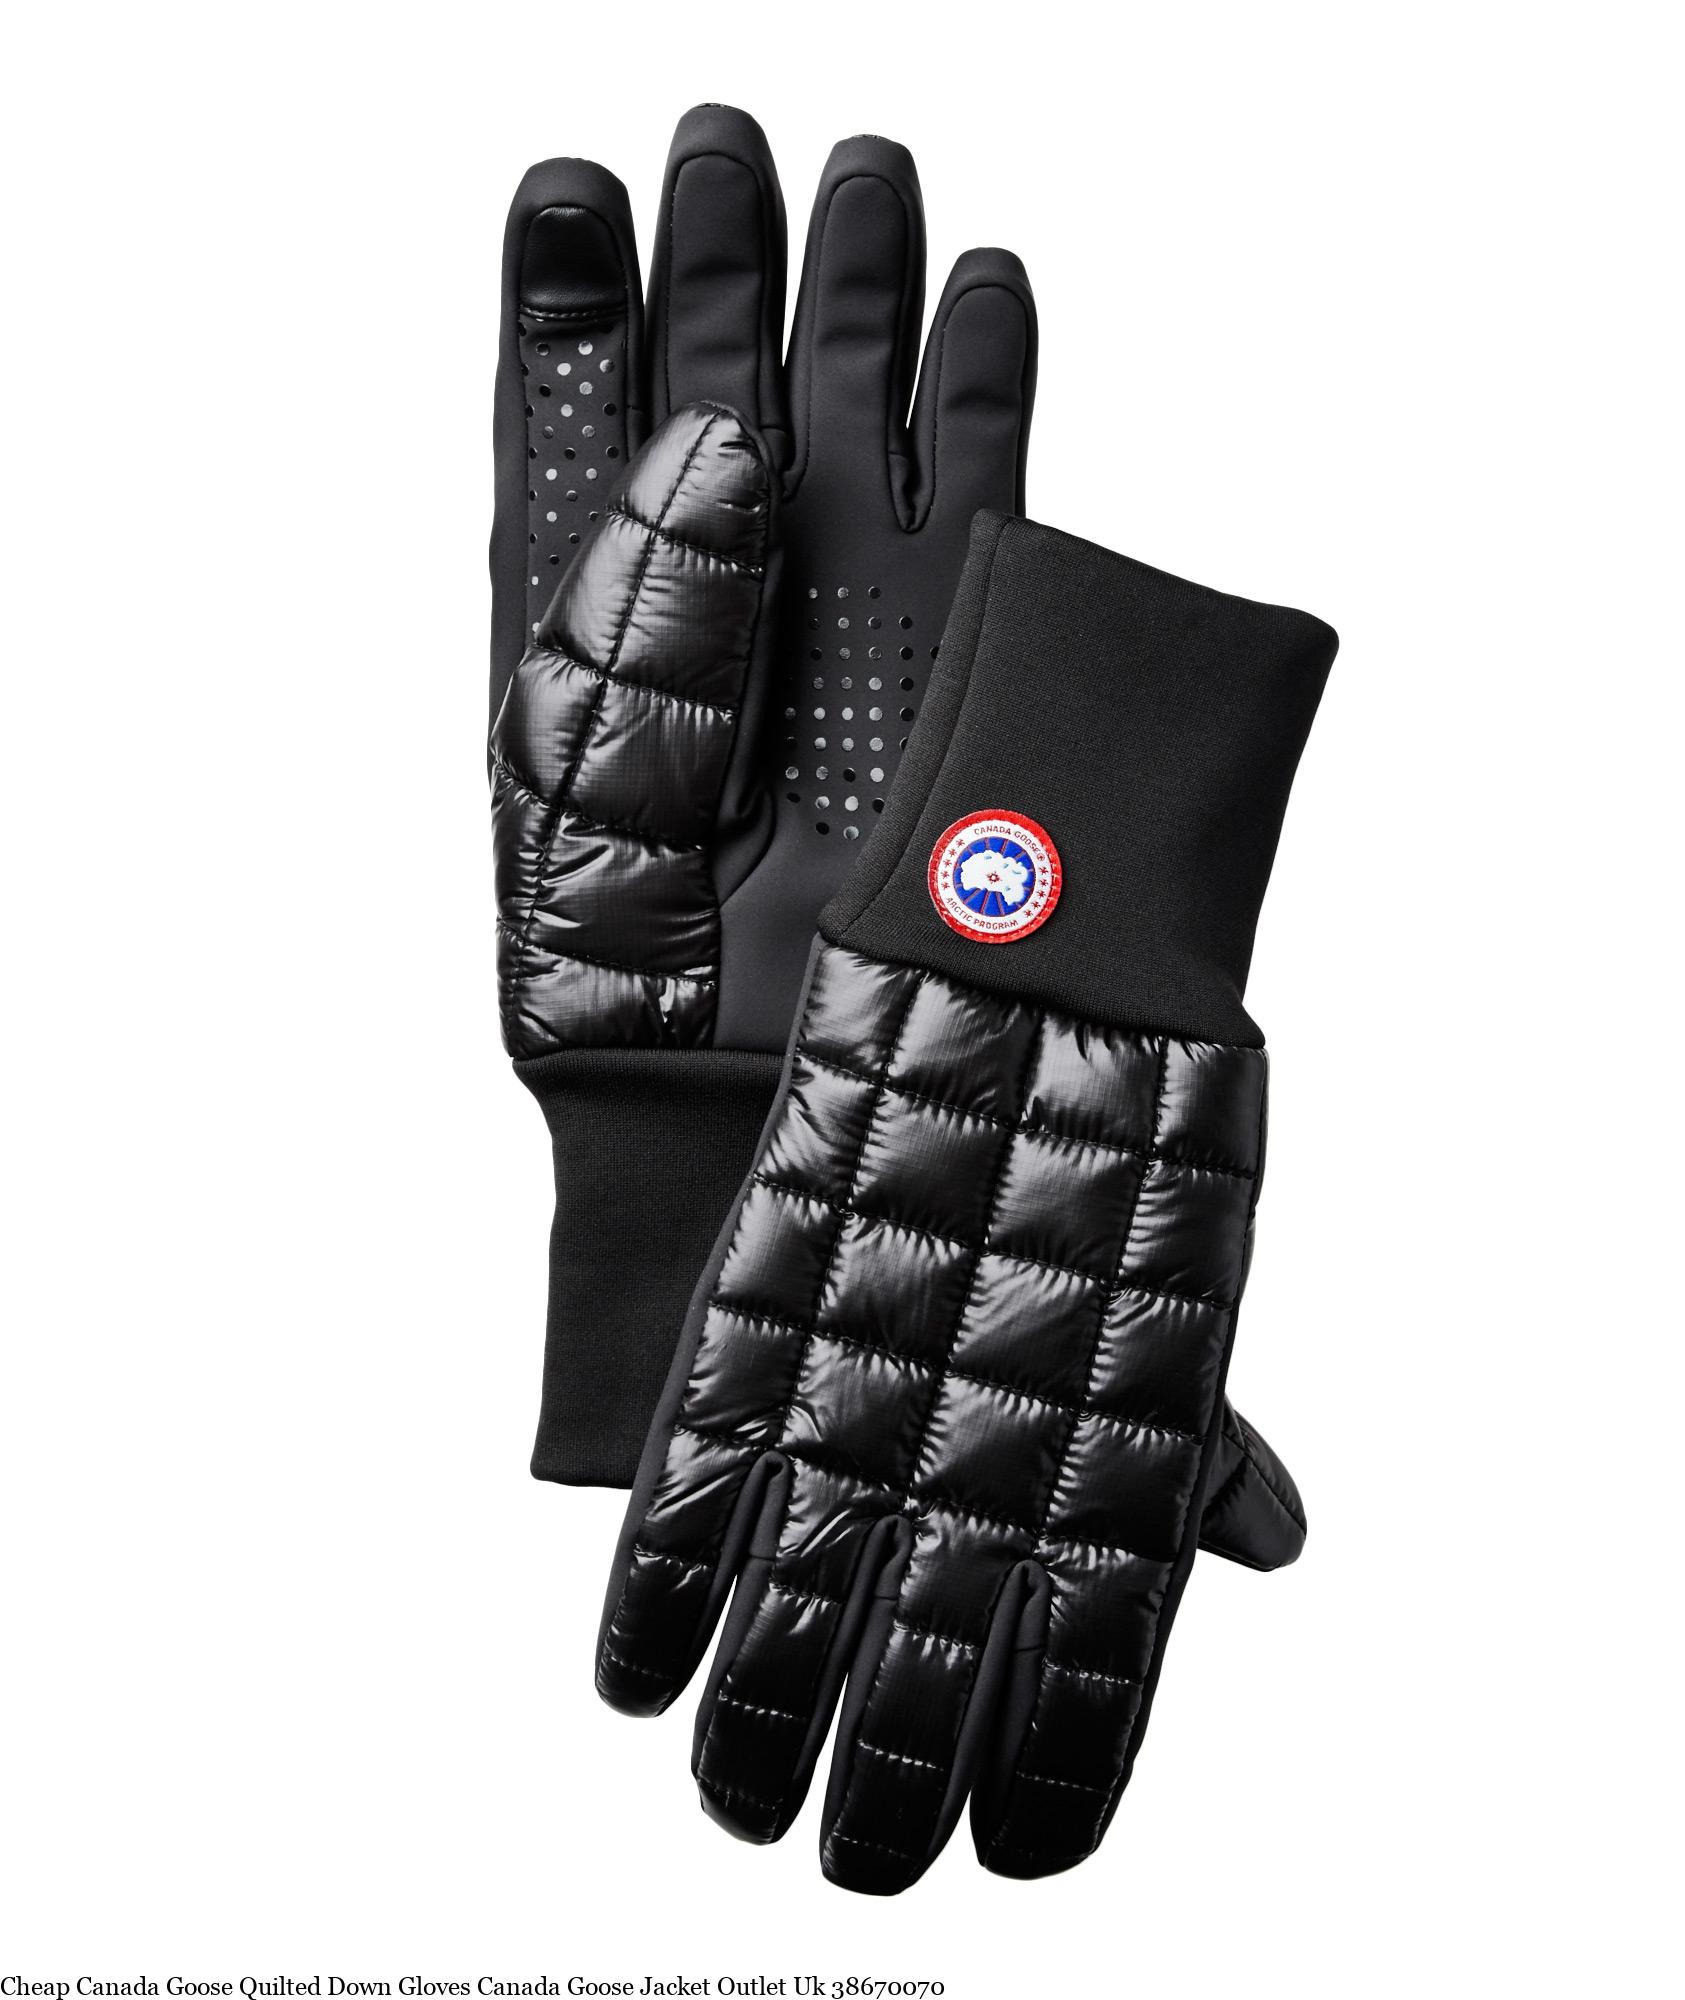 5fa726f8b Cheap Canada Goose Quilted Down Gloves Canada Goose Jacket Outlet Uk  38670070